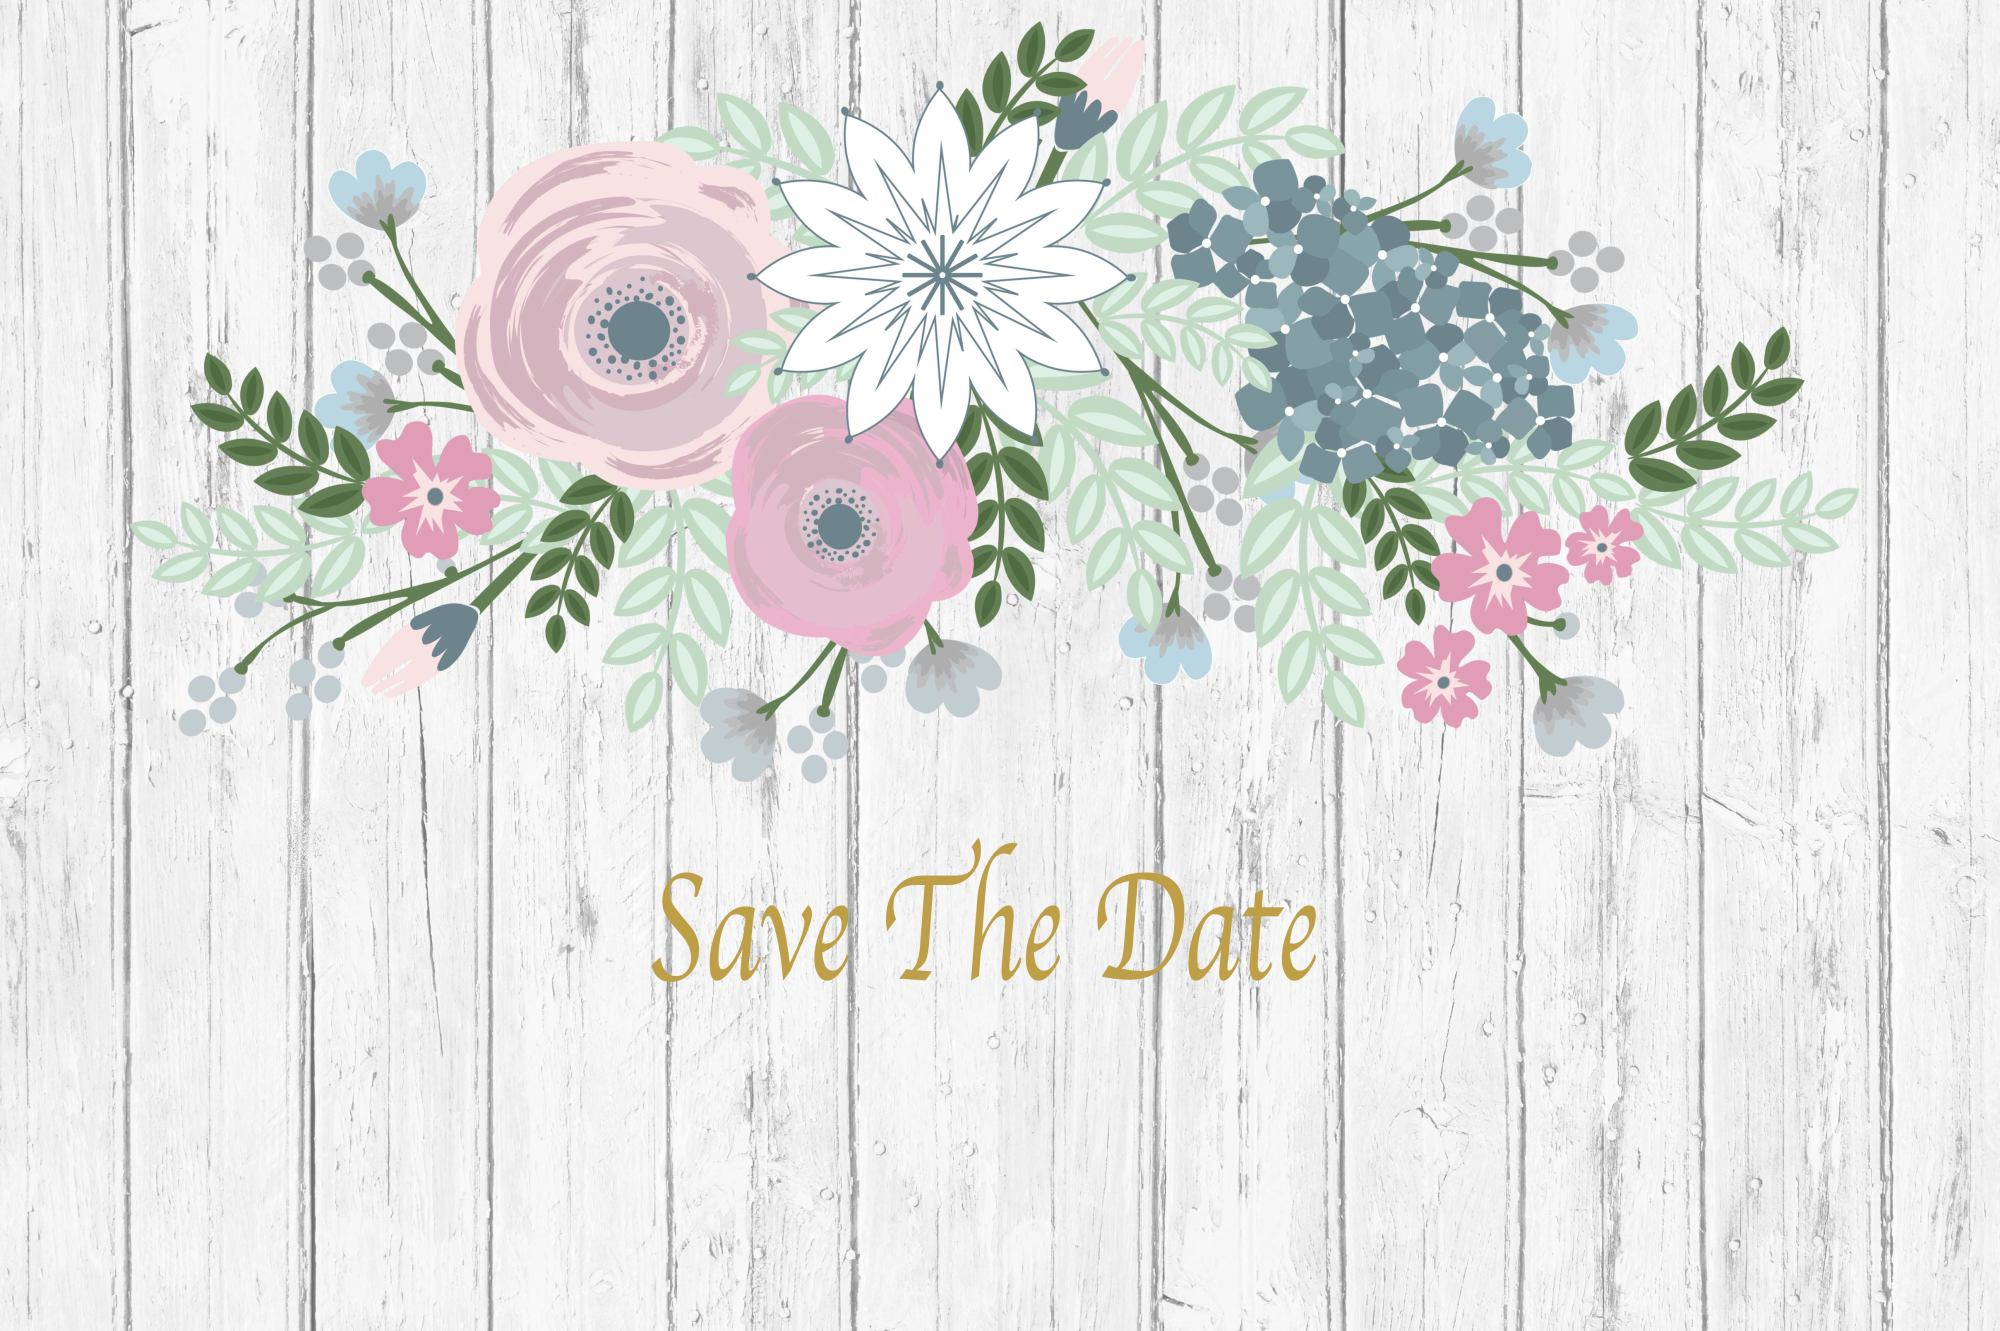 Save the date example